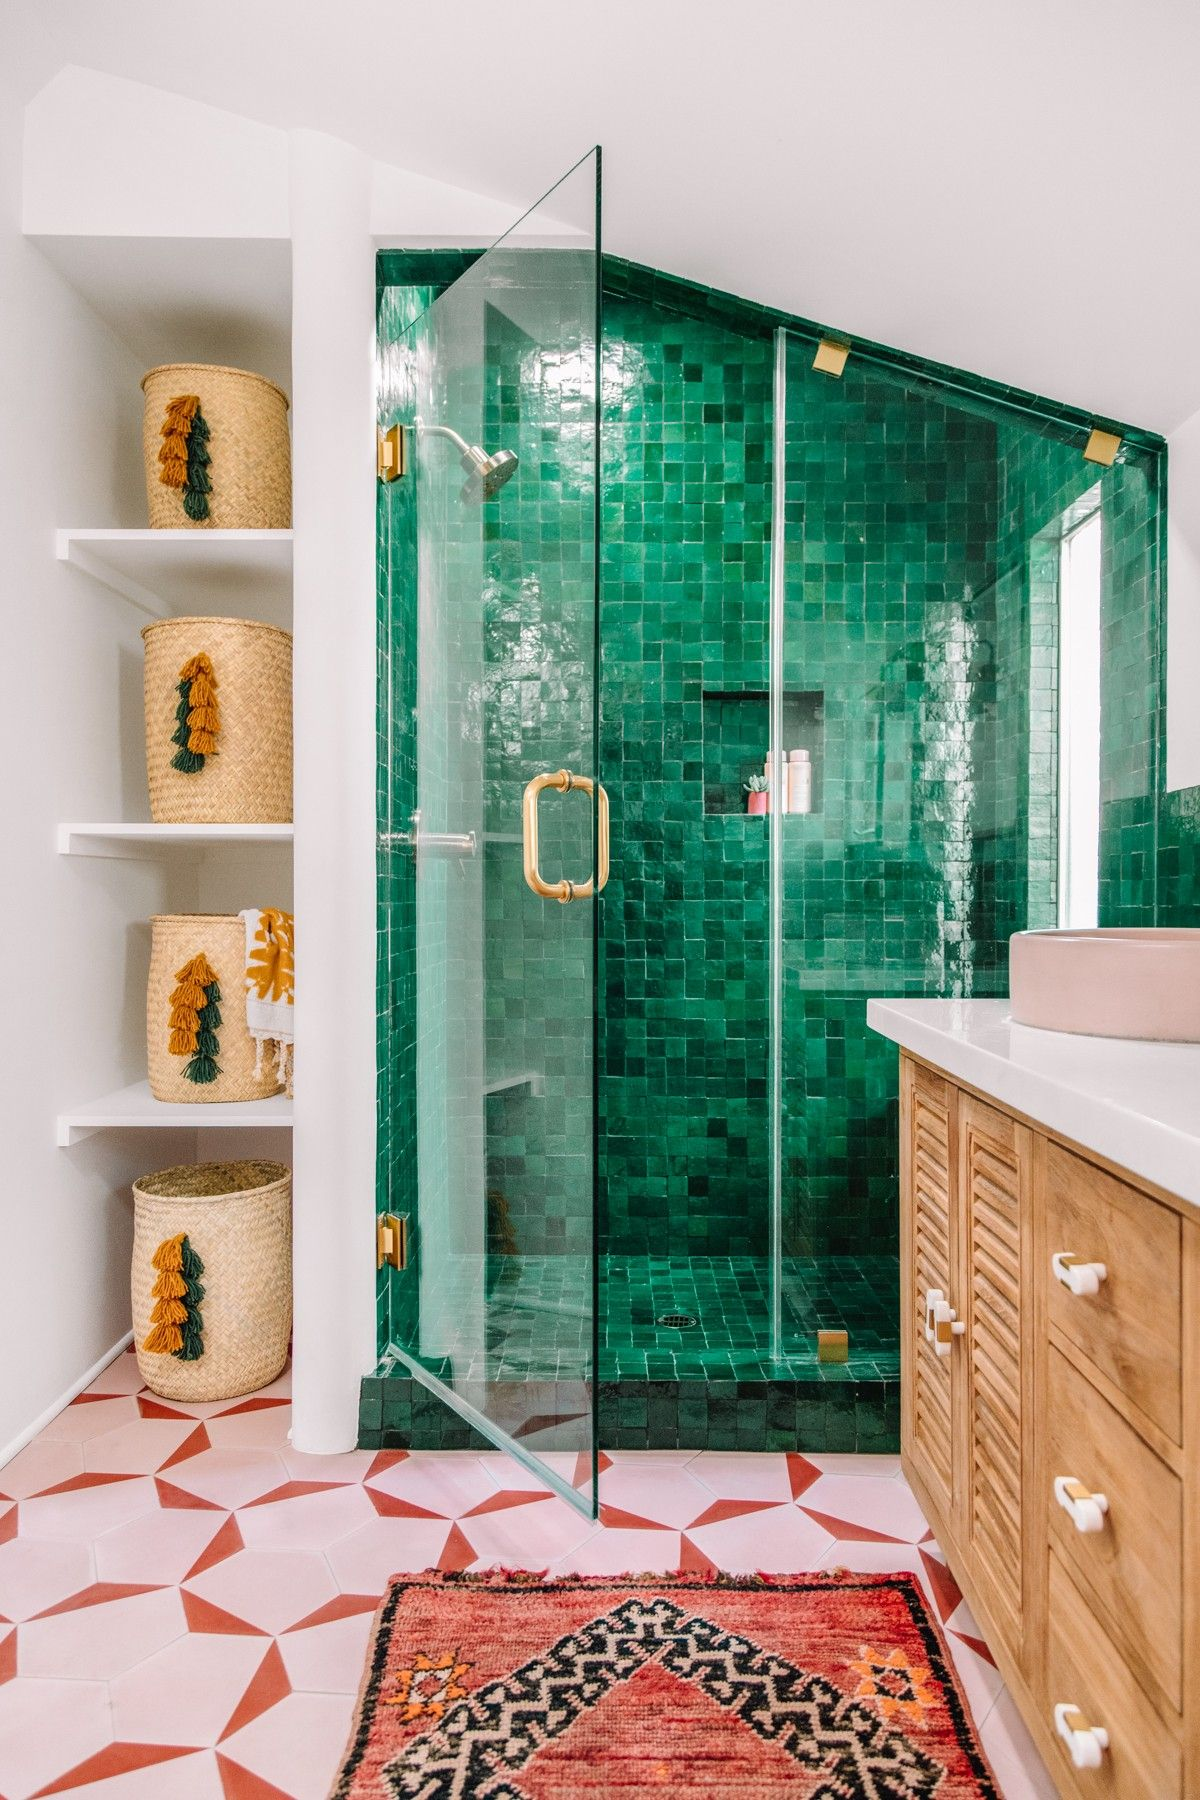 Eclectic Pink And Green Bathroom Decor Homedecor Interiordesign